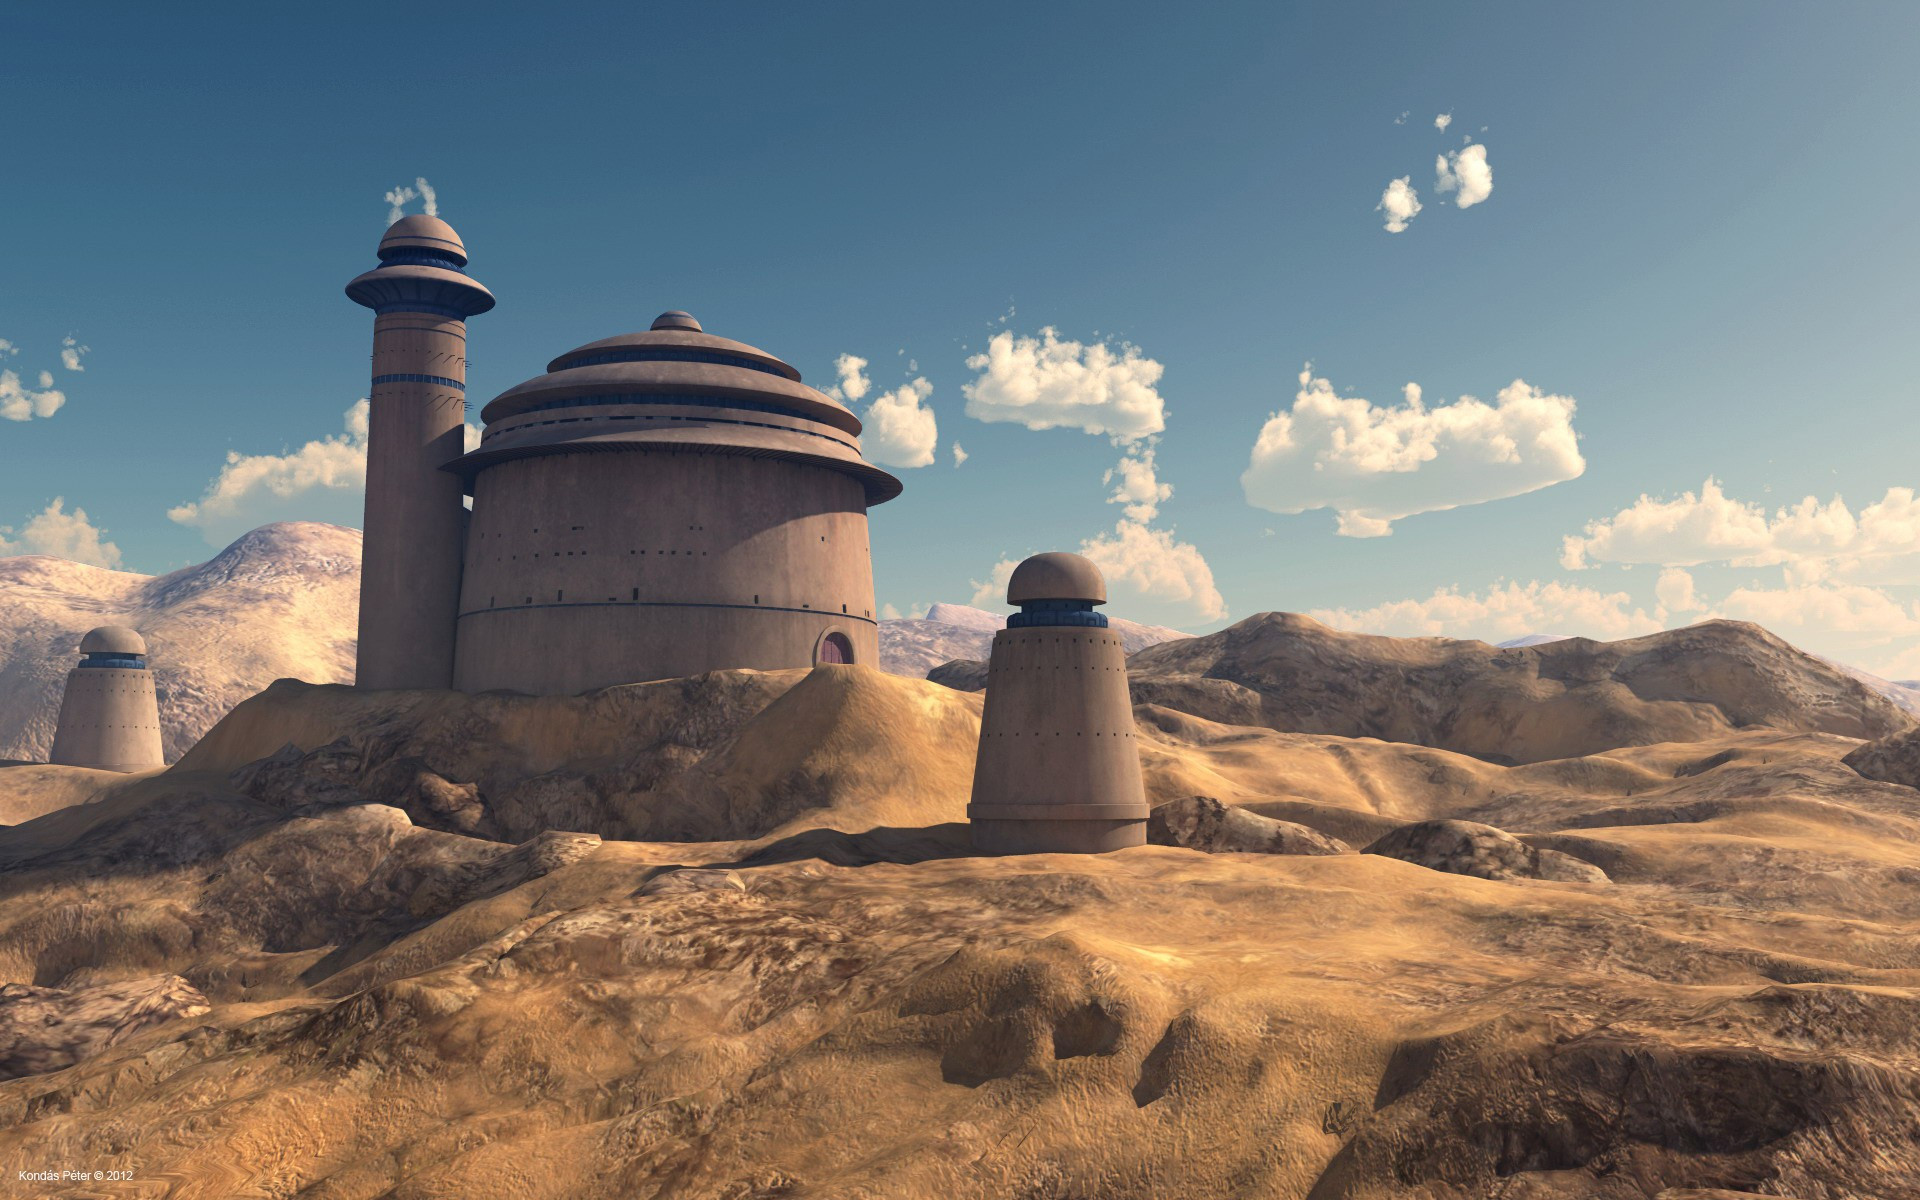 Best ideas about Star Wars Landscape . Save or Pin Star wars mountains clouds landscapes sand dark stars Now.